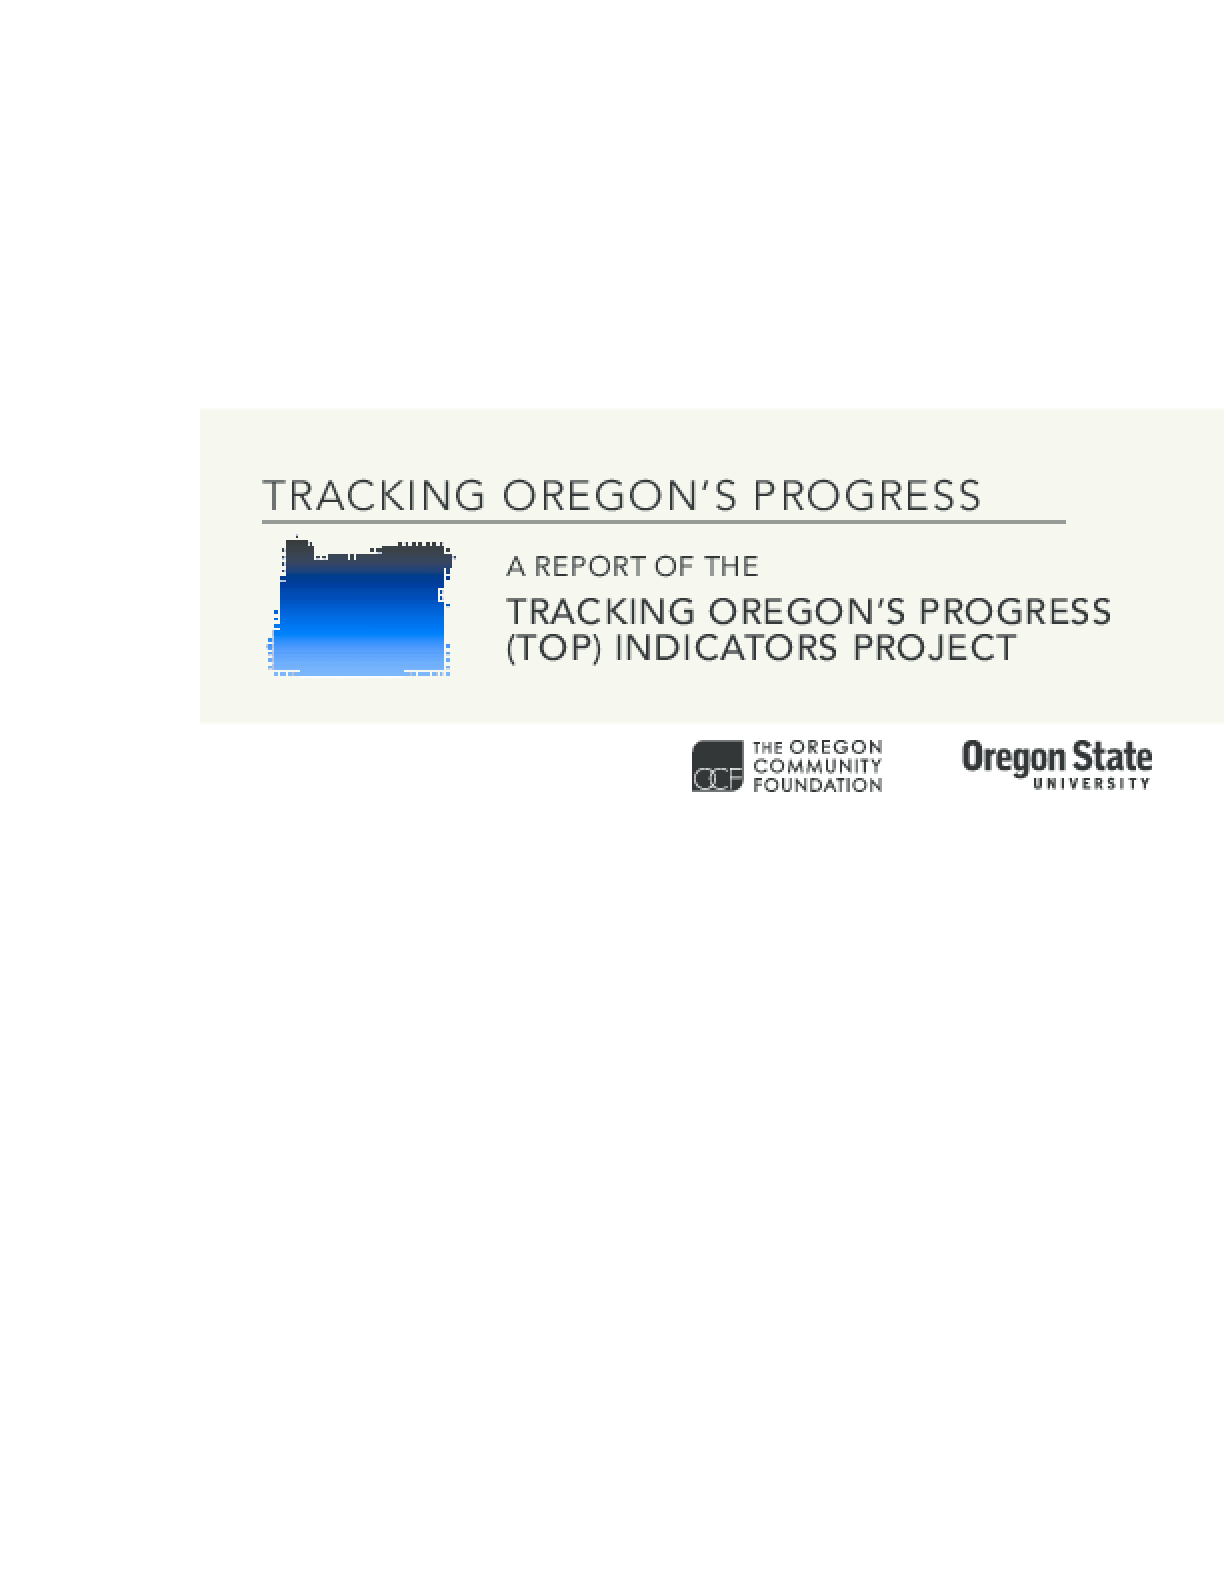 Tracking Oregon's Progress: A Report of the Tracking Oregon's Progress (TOP) Indicators Project